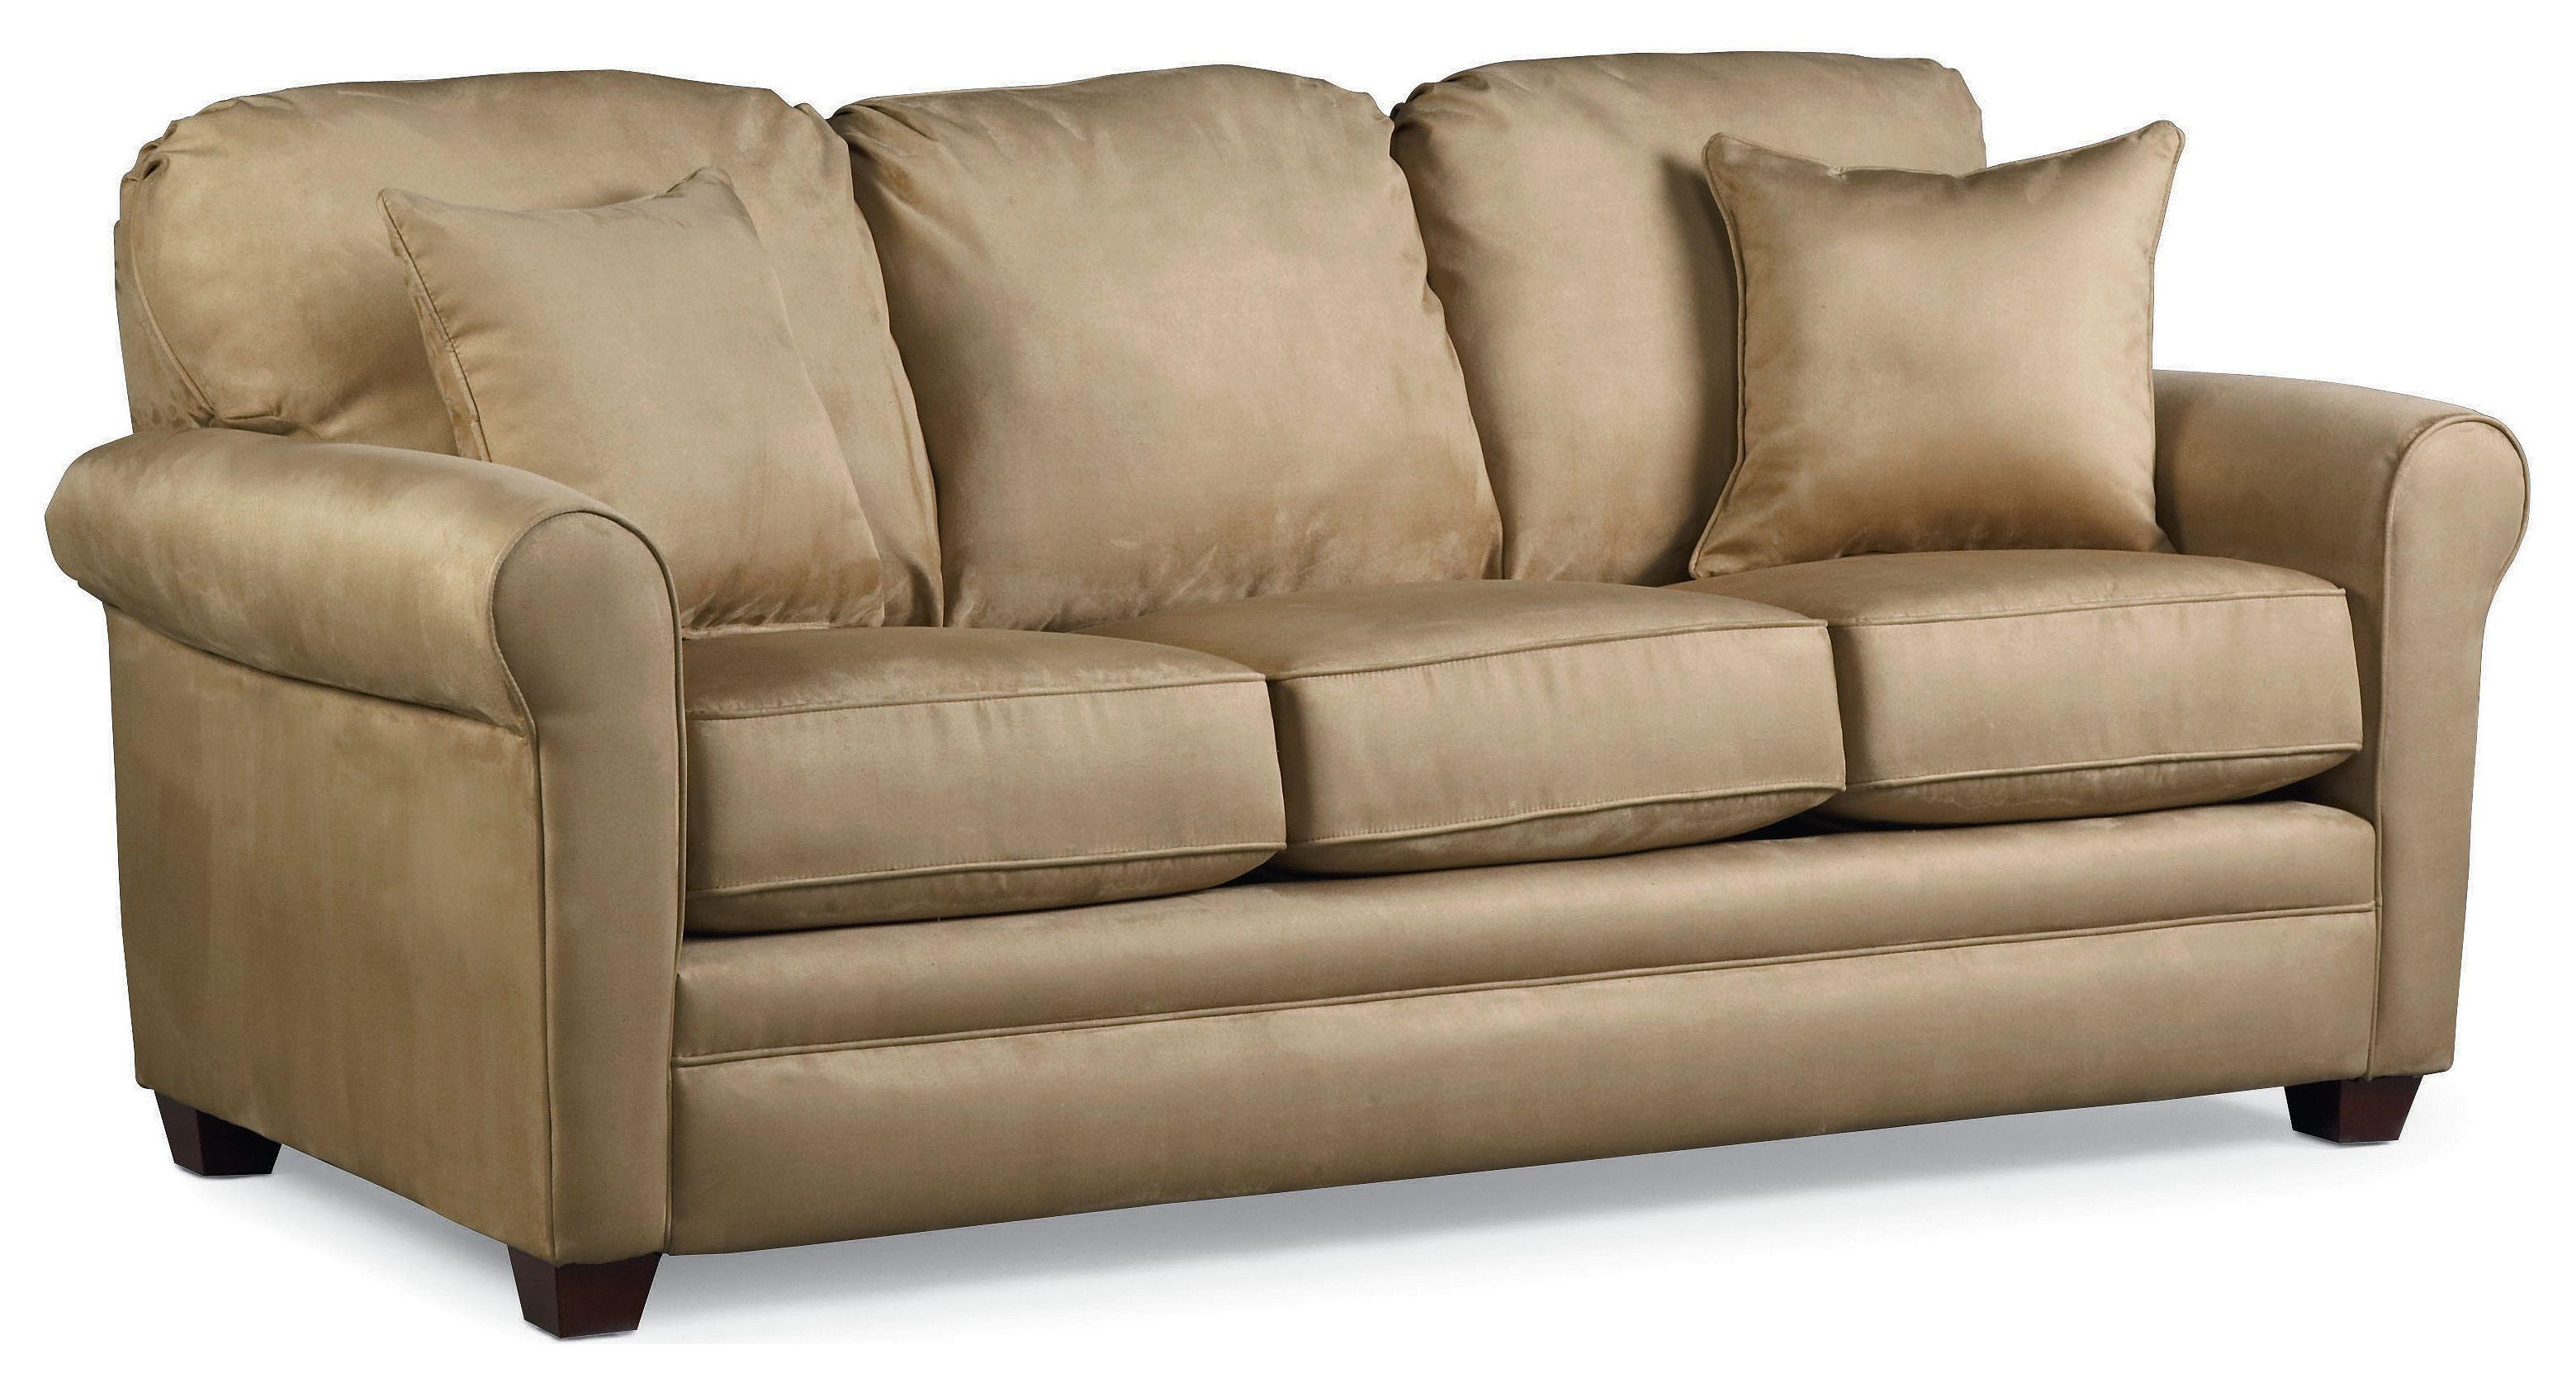 Innovative Queen Size Sofa Sleeper Coolest Home Design Plans With In Sofa Sleepers Queen Size (Image 10 of 20)